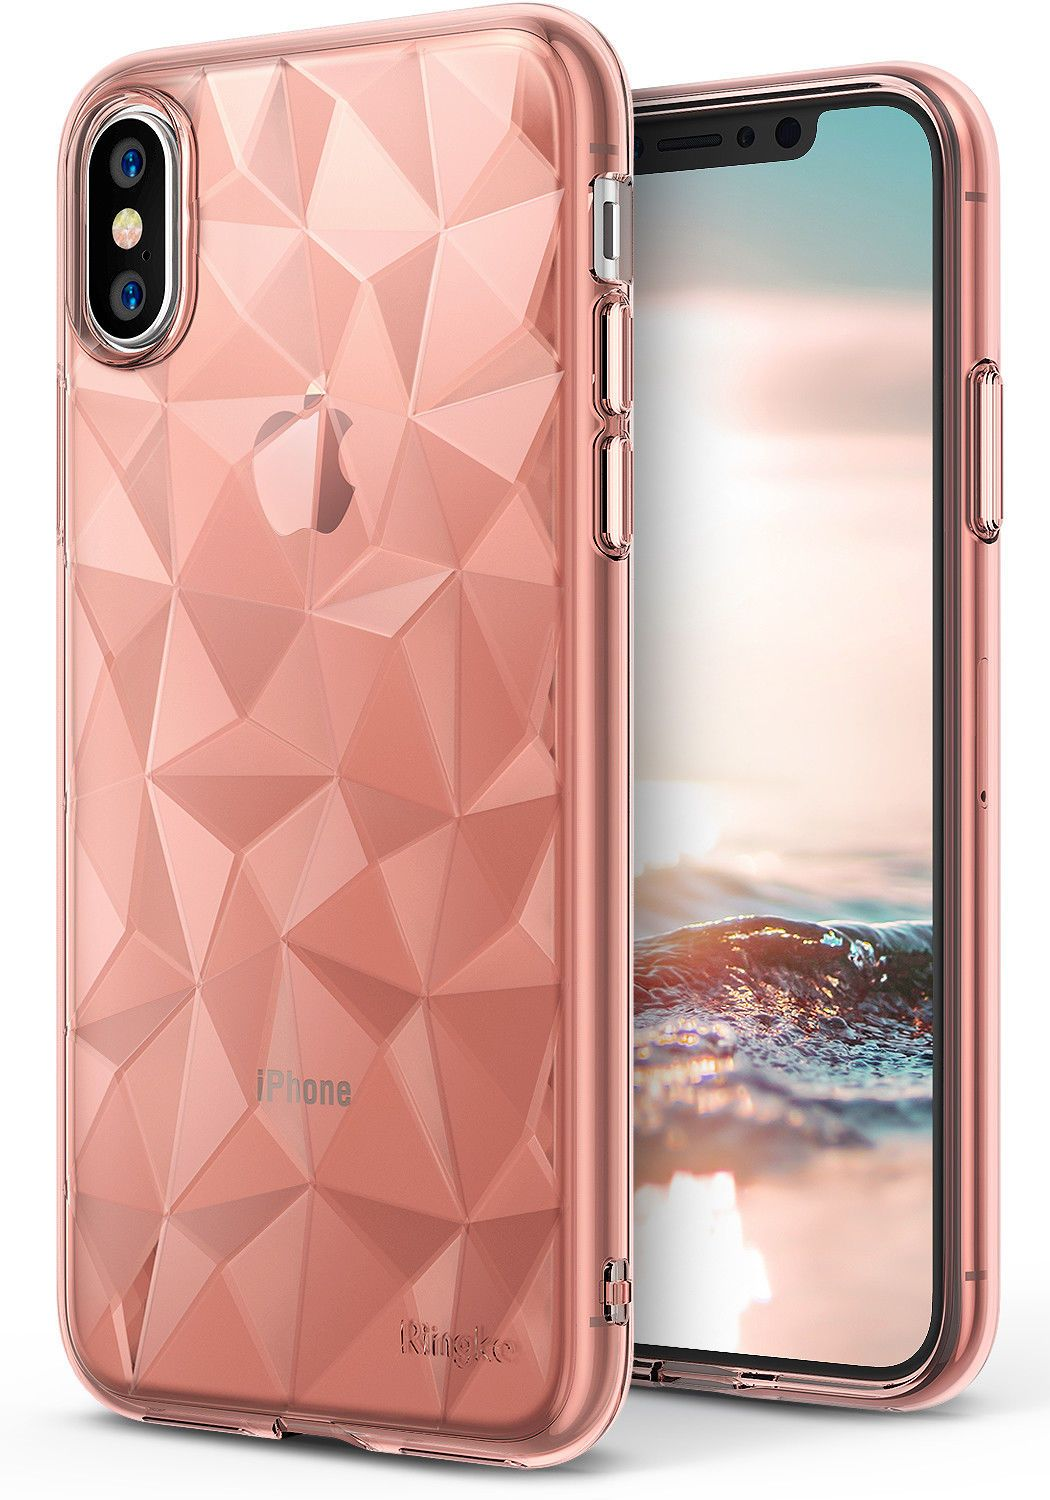 ebacc85006fe3 Details about For iPhone X 10 | Ringke [AIR PRISM] 3D Diamond ...